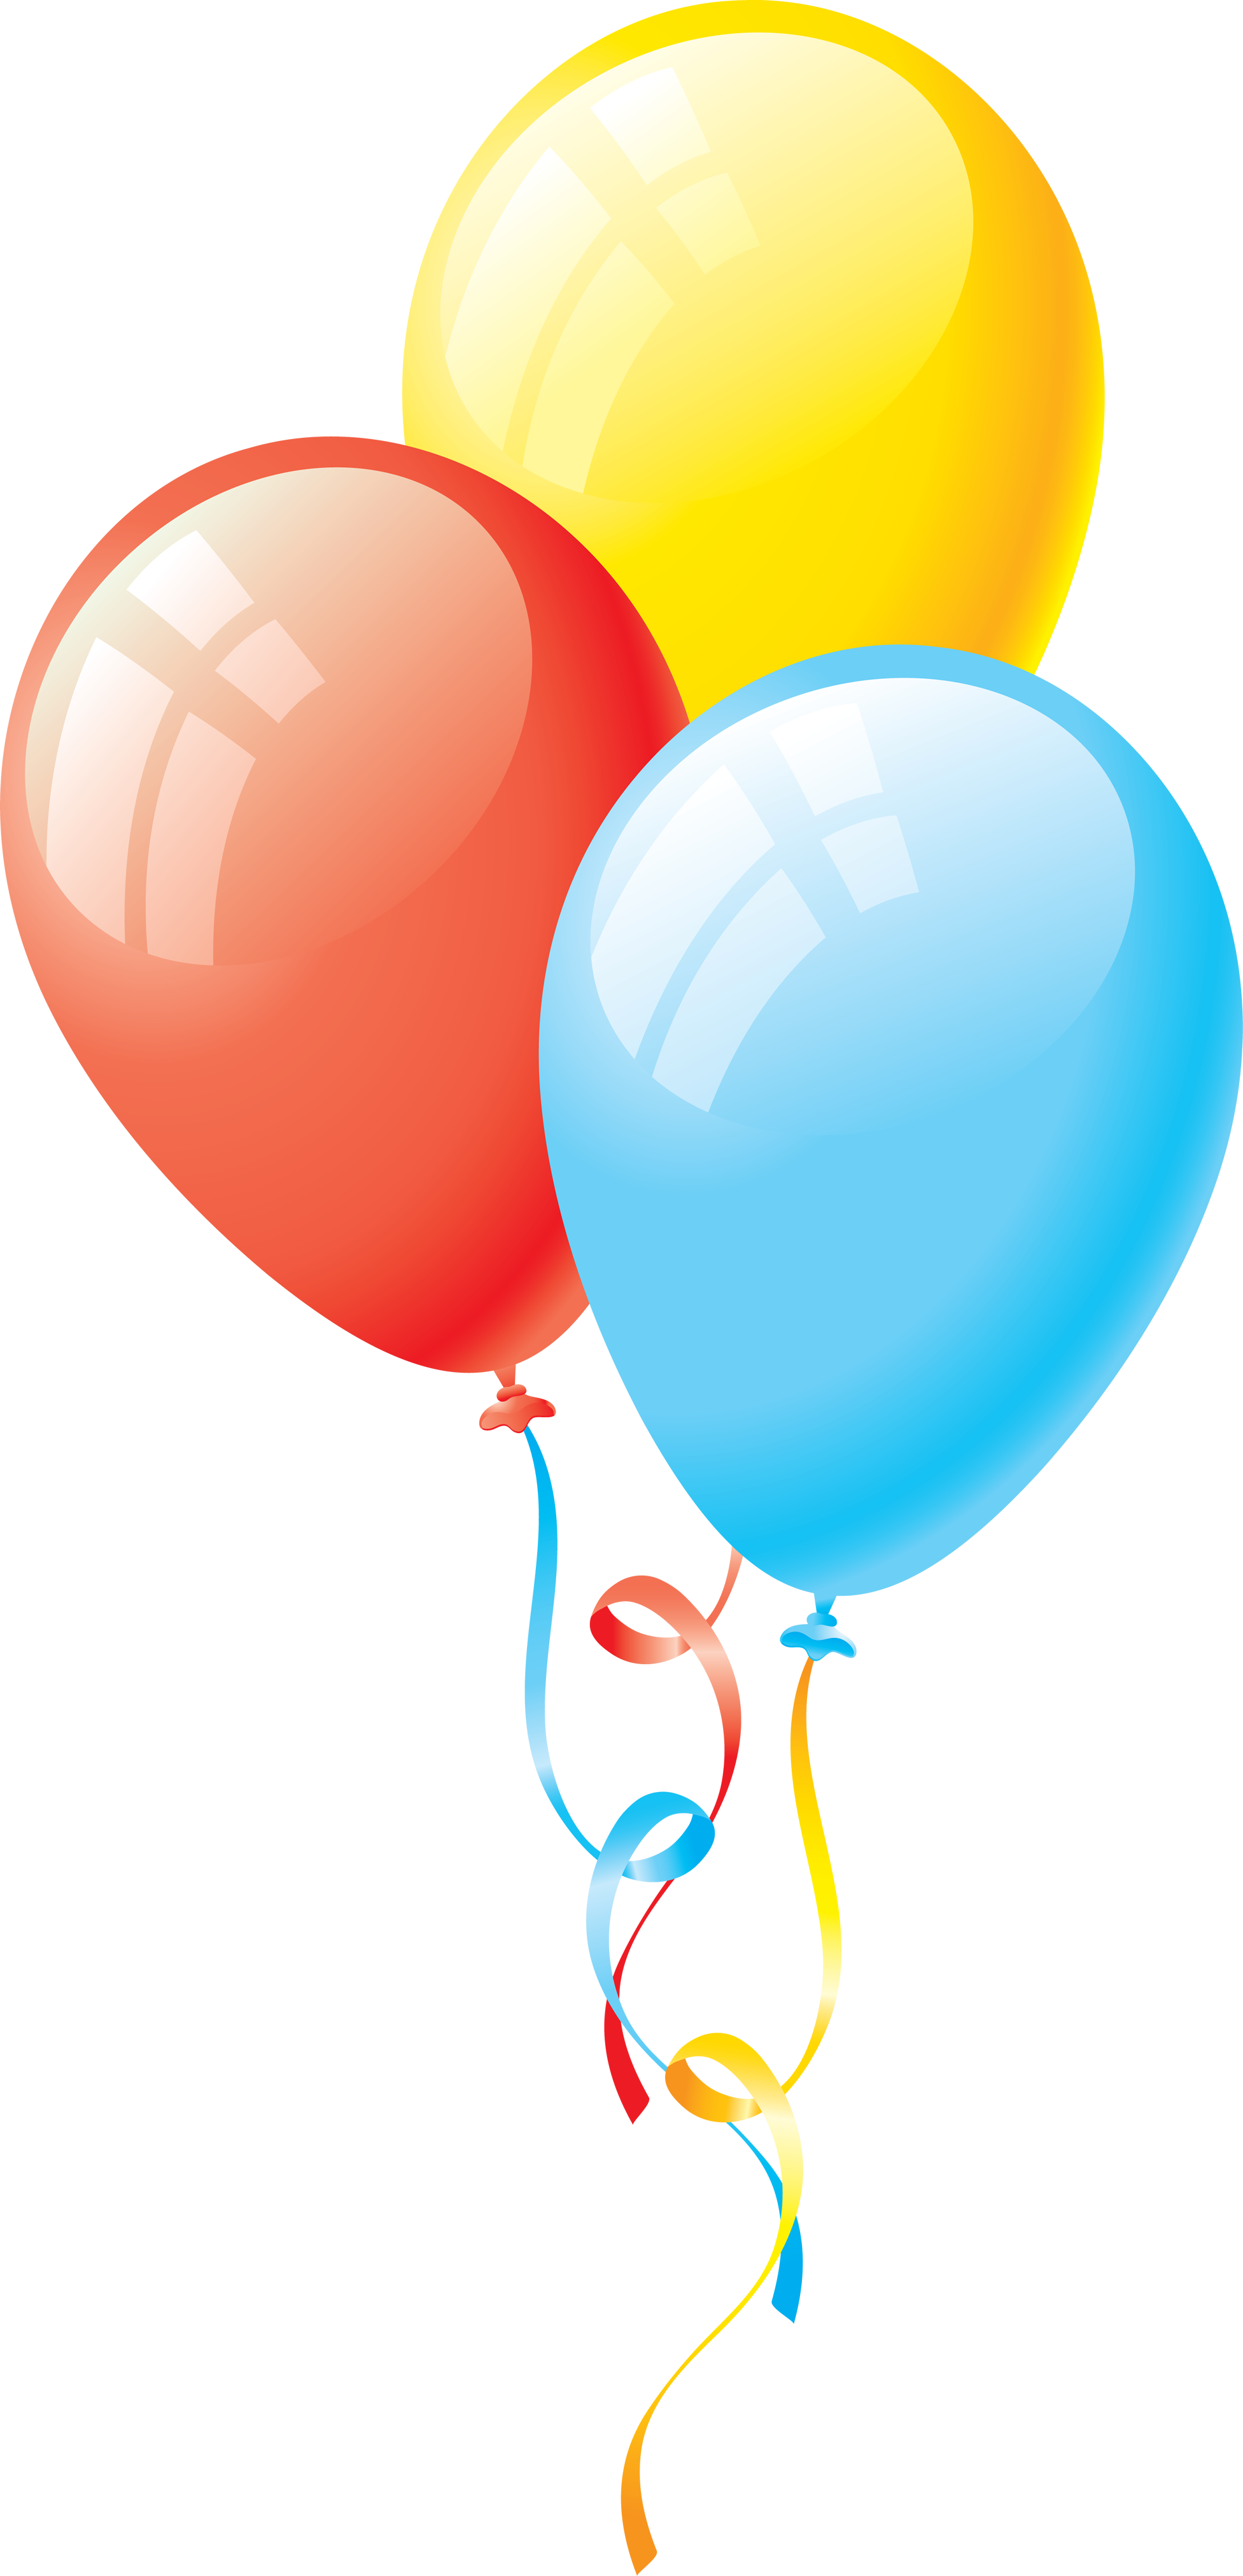 Ballons .png. Balloon white background images